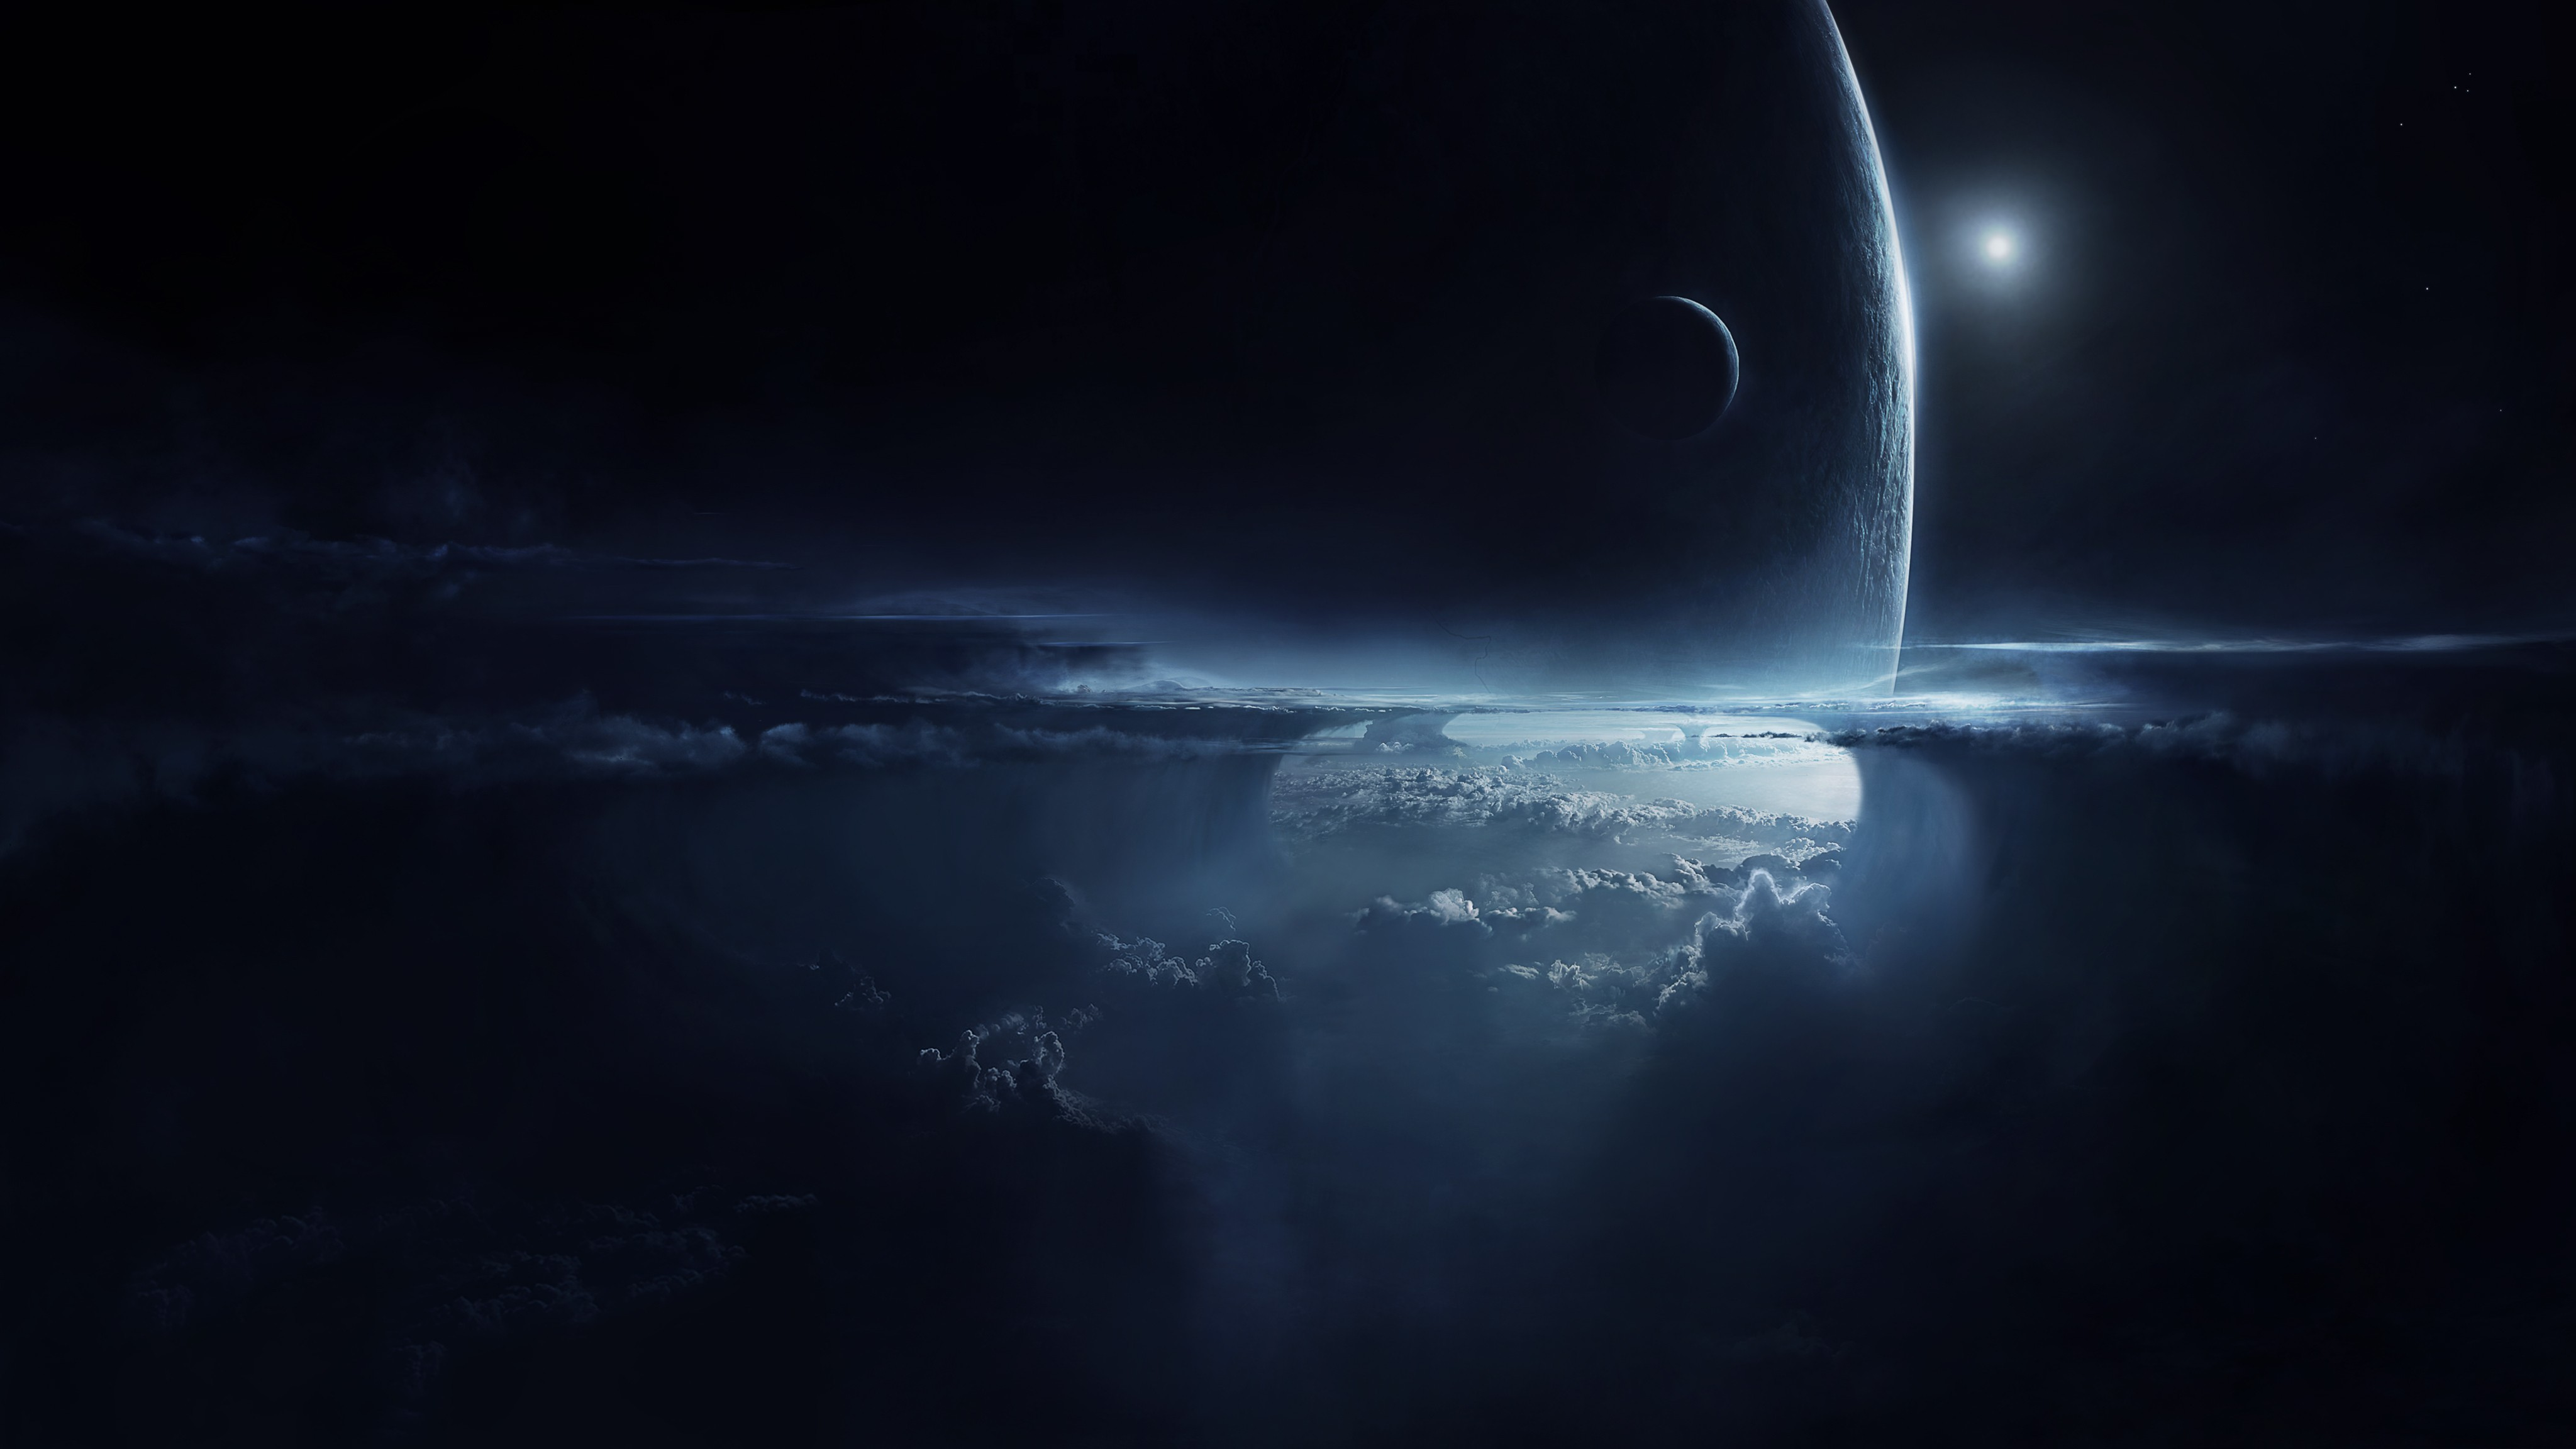 Space Dark Stars Planets Artwork Cloud Skies Wallpaper